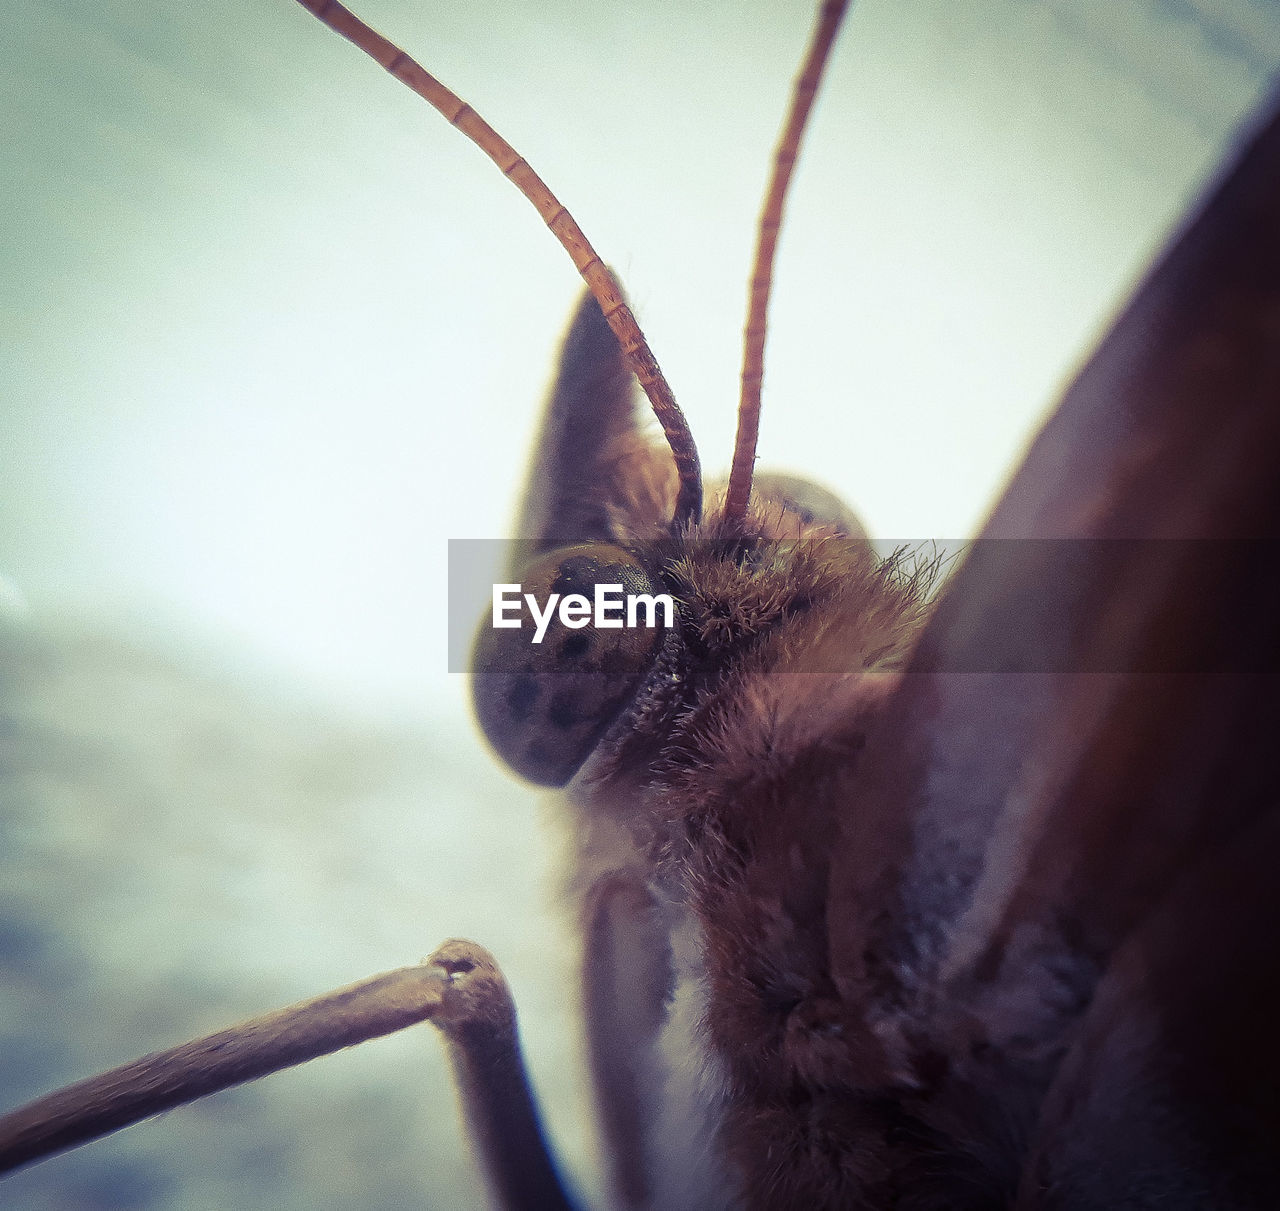 animal themes, one animal, animal, animal wildlife, animals in the wild, invertebrate, close-up, insect, animal body part, no people, selective focus, nature, day, focus on foreground, animal antenna, extreme close-up, outdoors, zoology, macro, brown, animal wing, animal eye, animal head